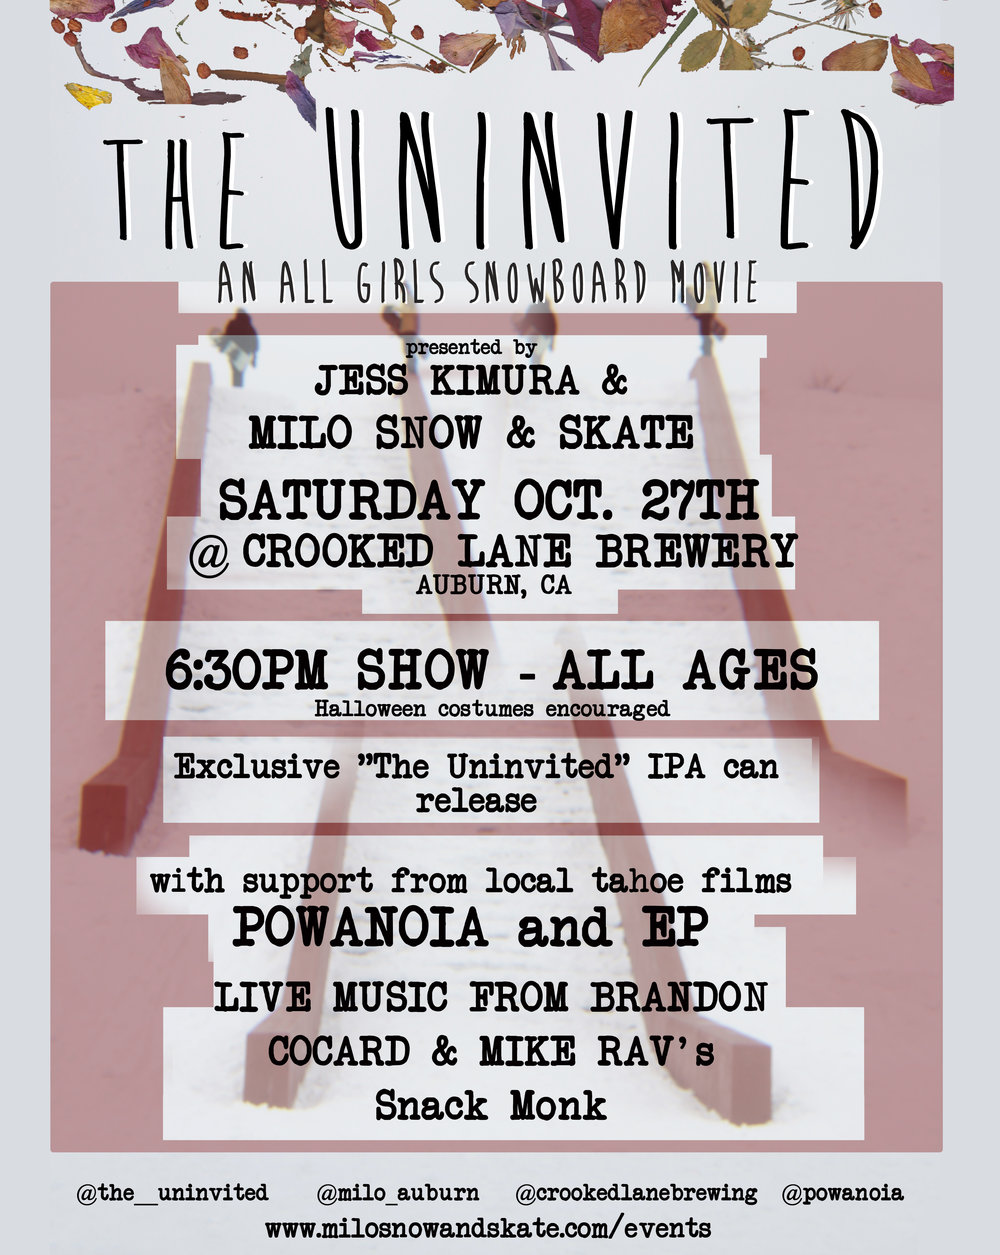 The Uninvited women's snowboard movie premiere